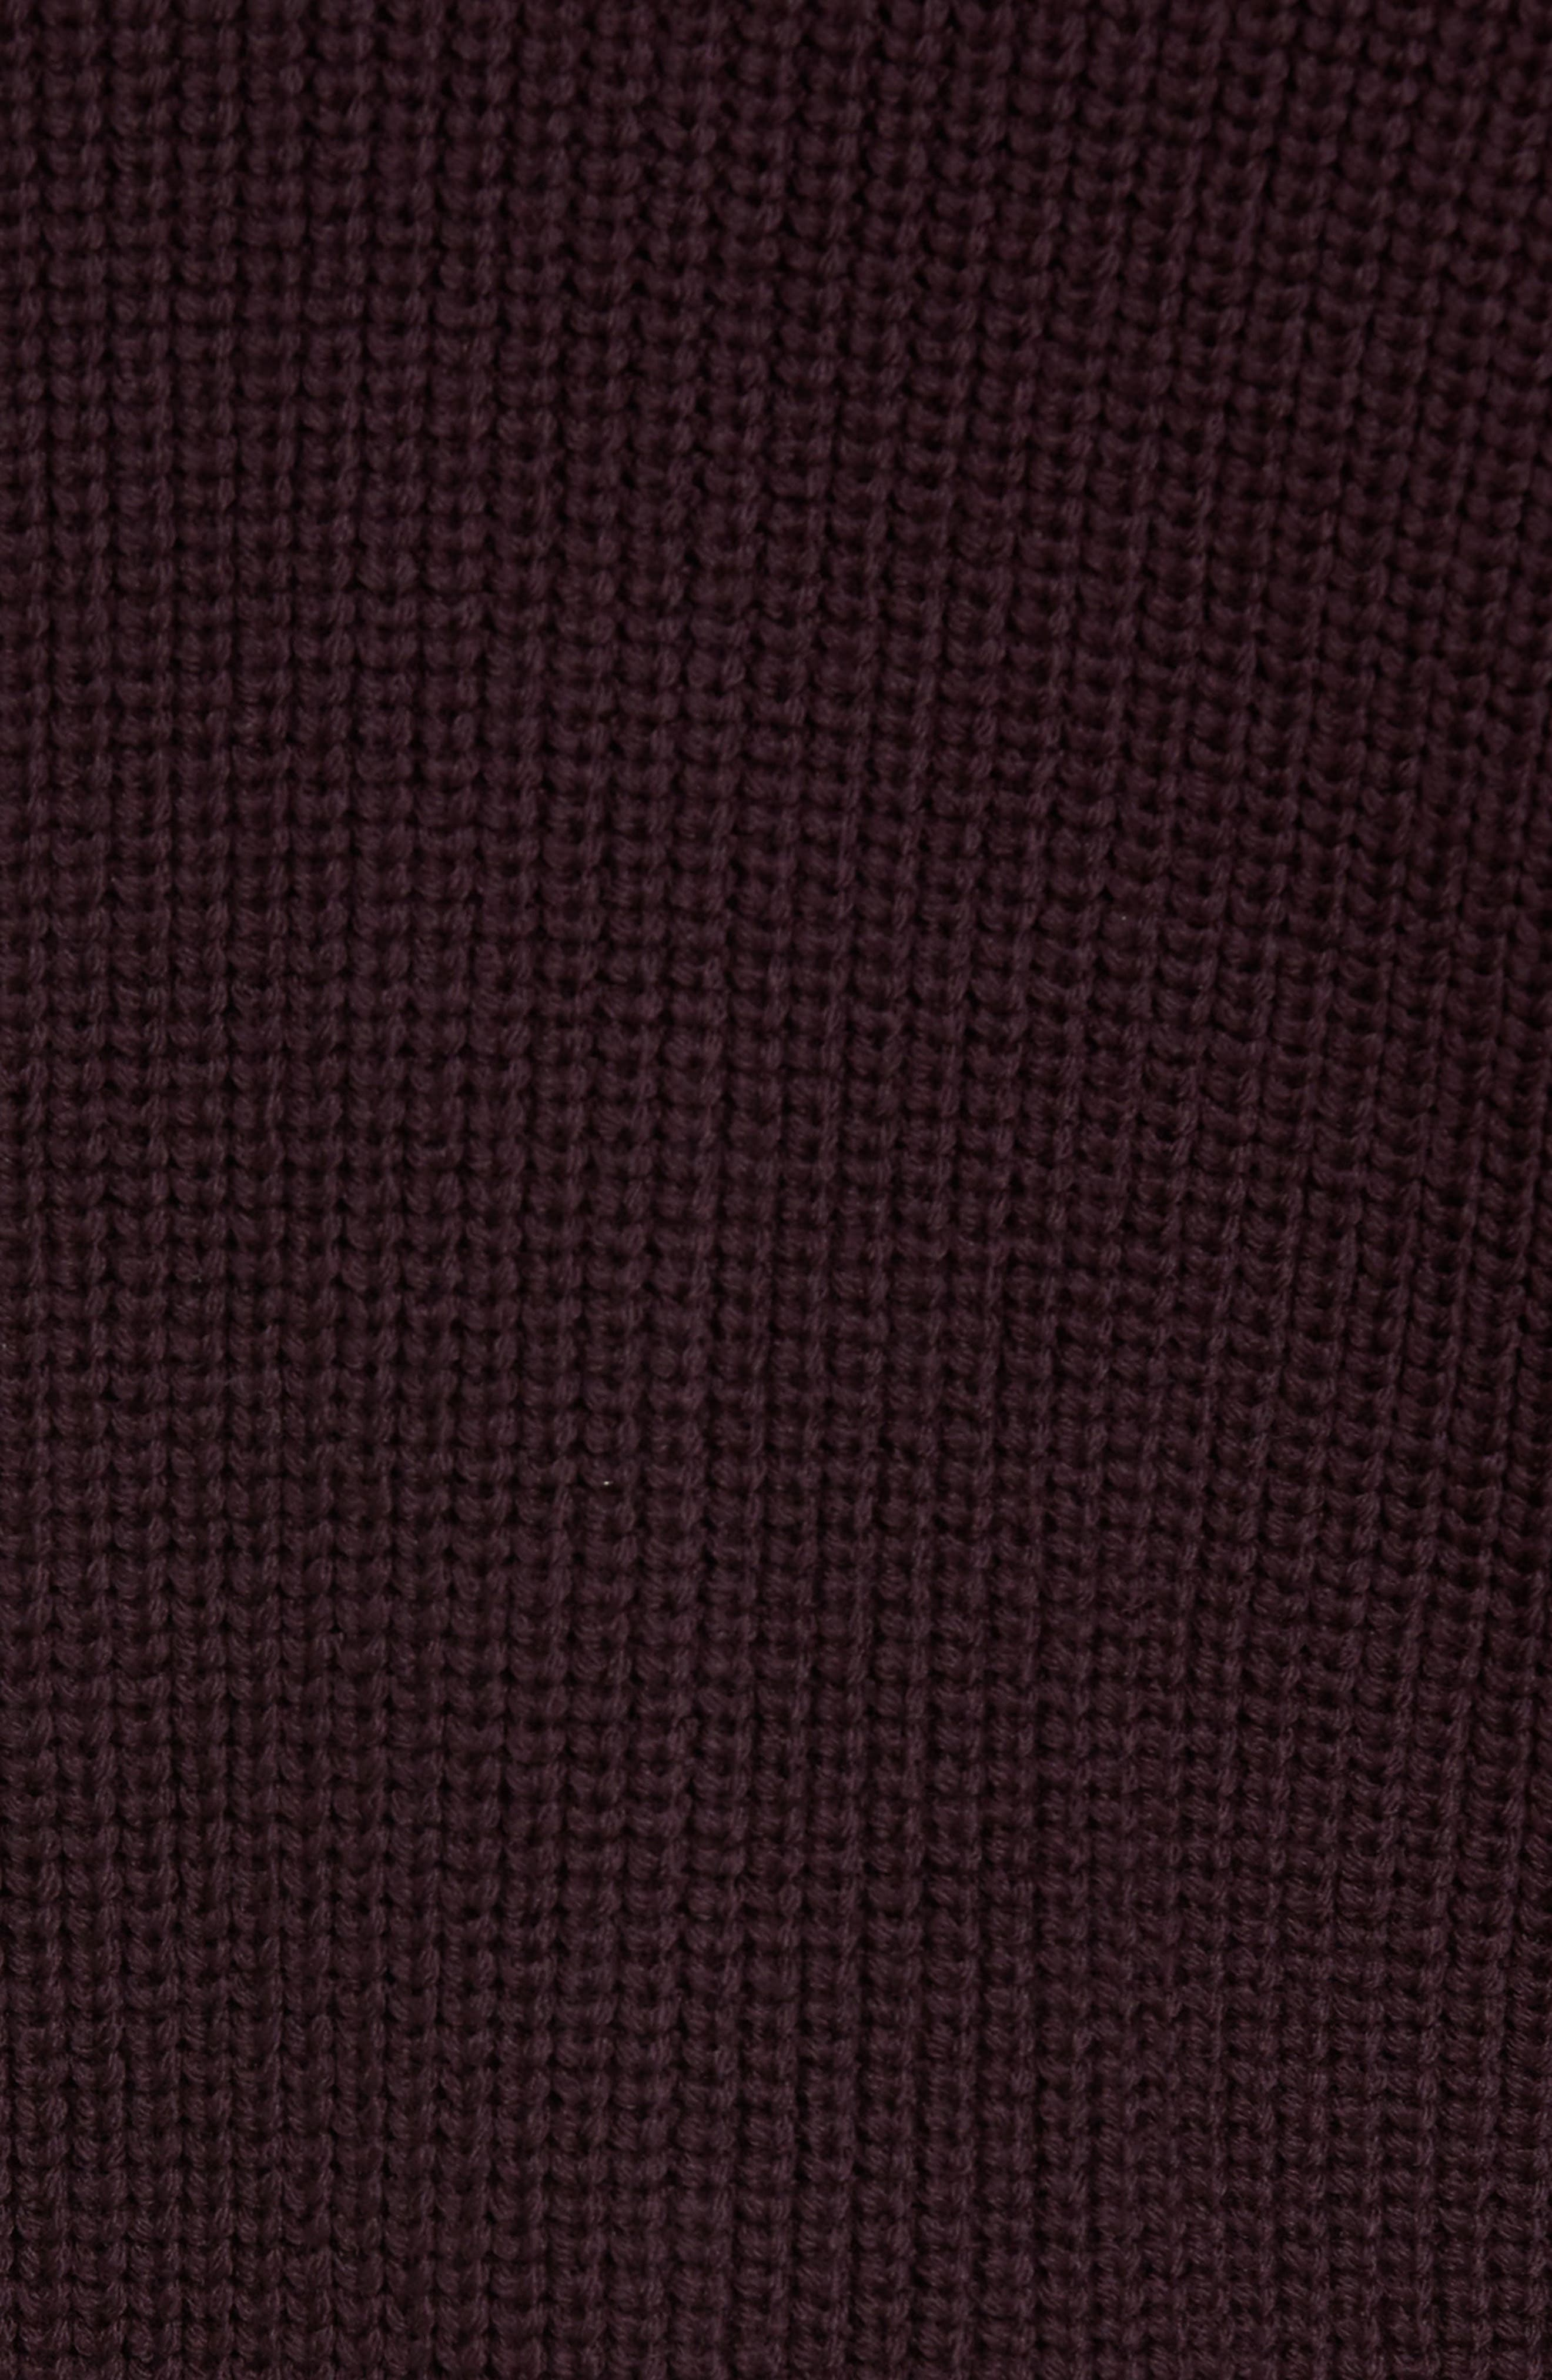 Ribbed Hooded Sweater,                             Alternate thumbnail 5, color,                             930